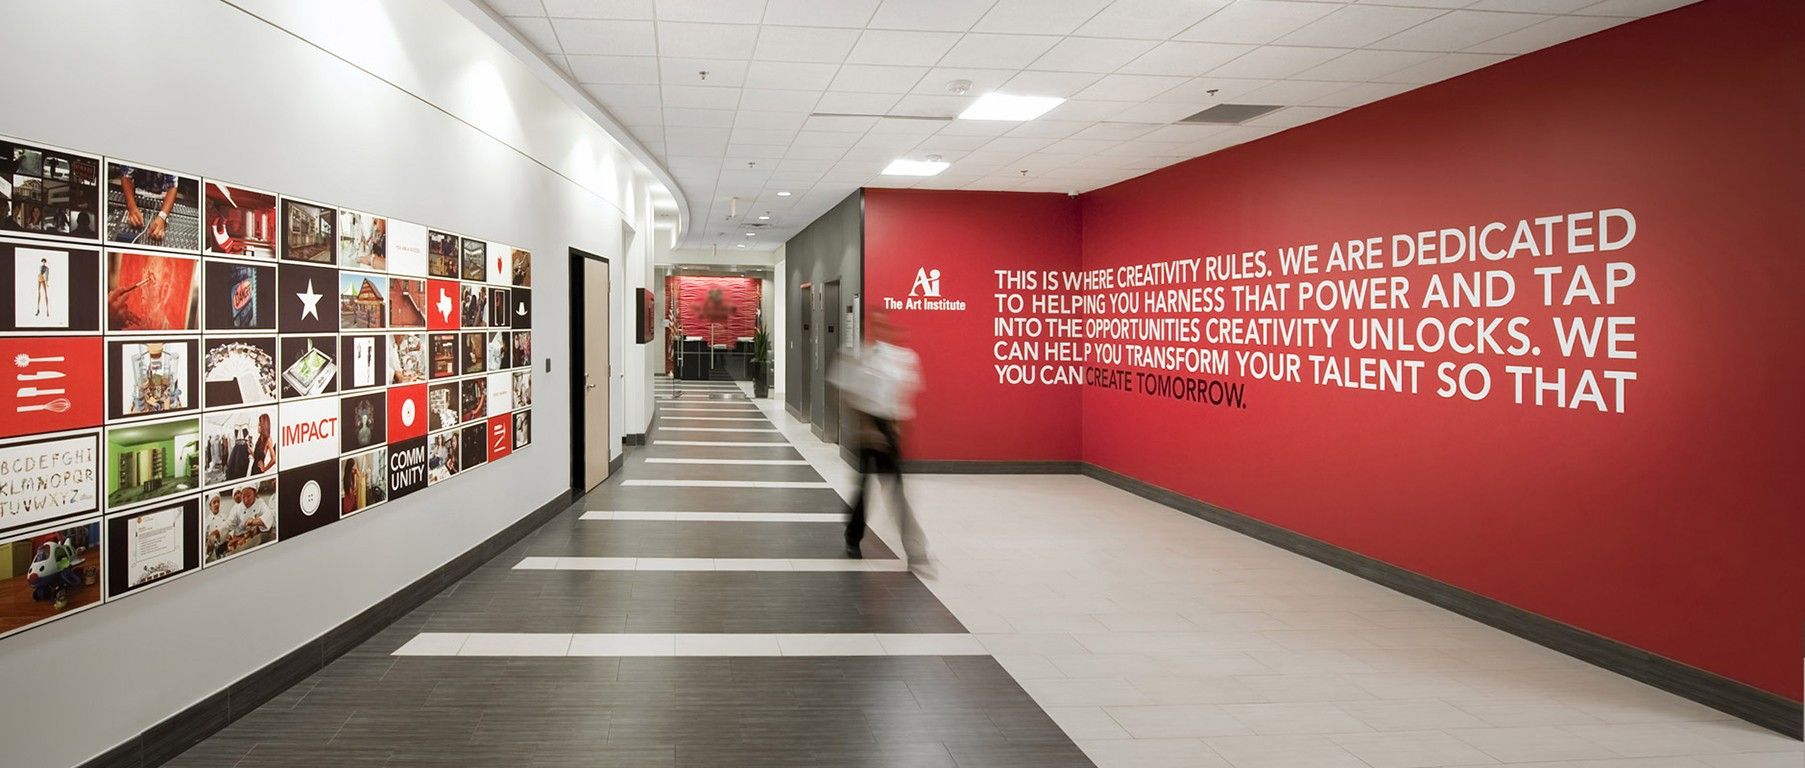 The Art Institutes Mission Statement Employees And Hiring Linkedin